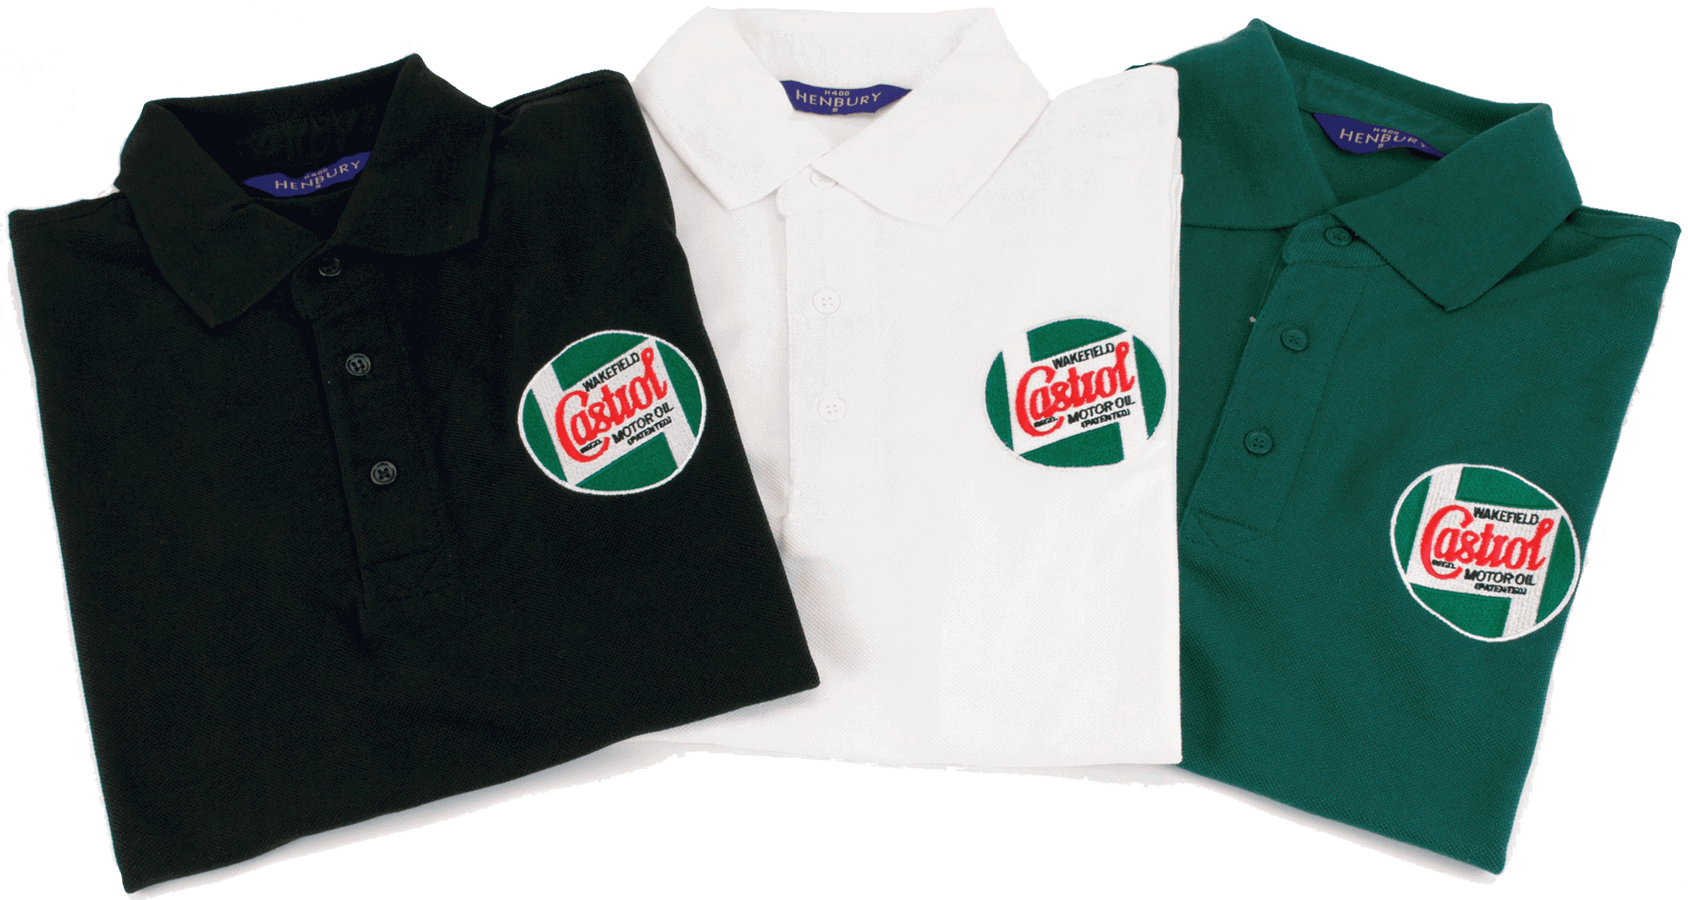 Classic Polo Shirts   Heavy pique poly/cotton polo shirts, with an embroidered logo on the chest and sleeve. Available in black, white, or green, small to extra large.